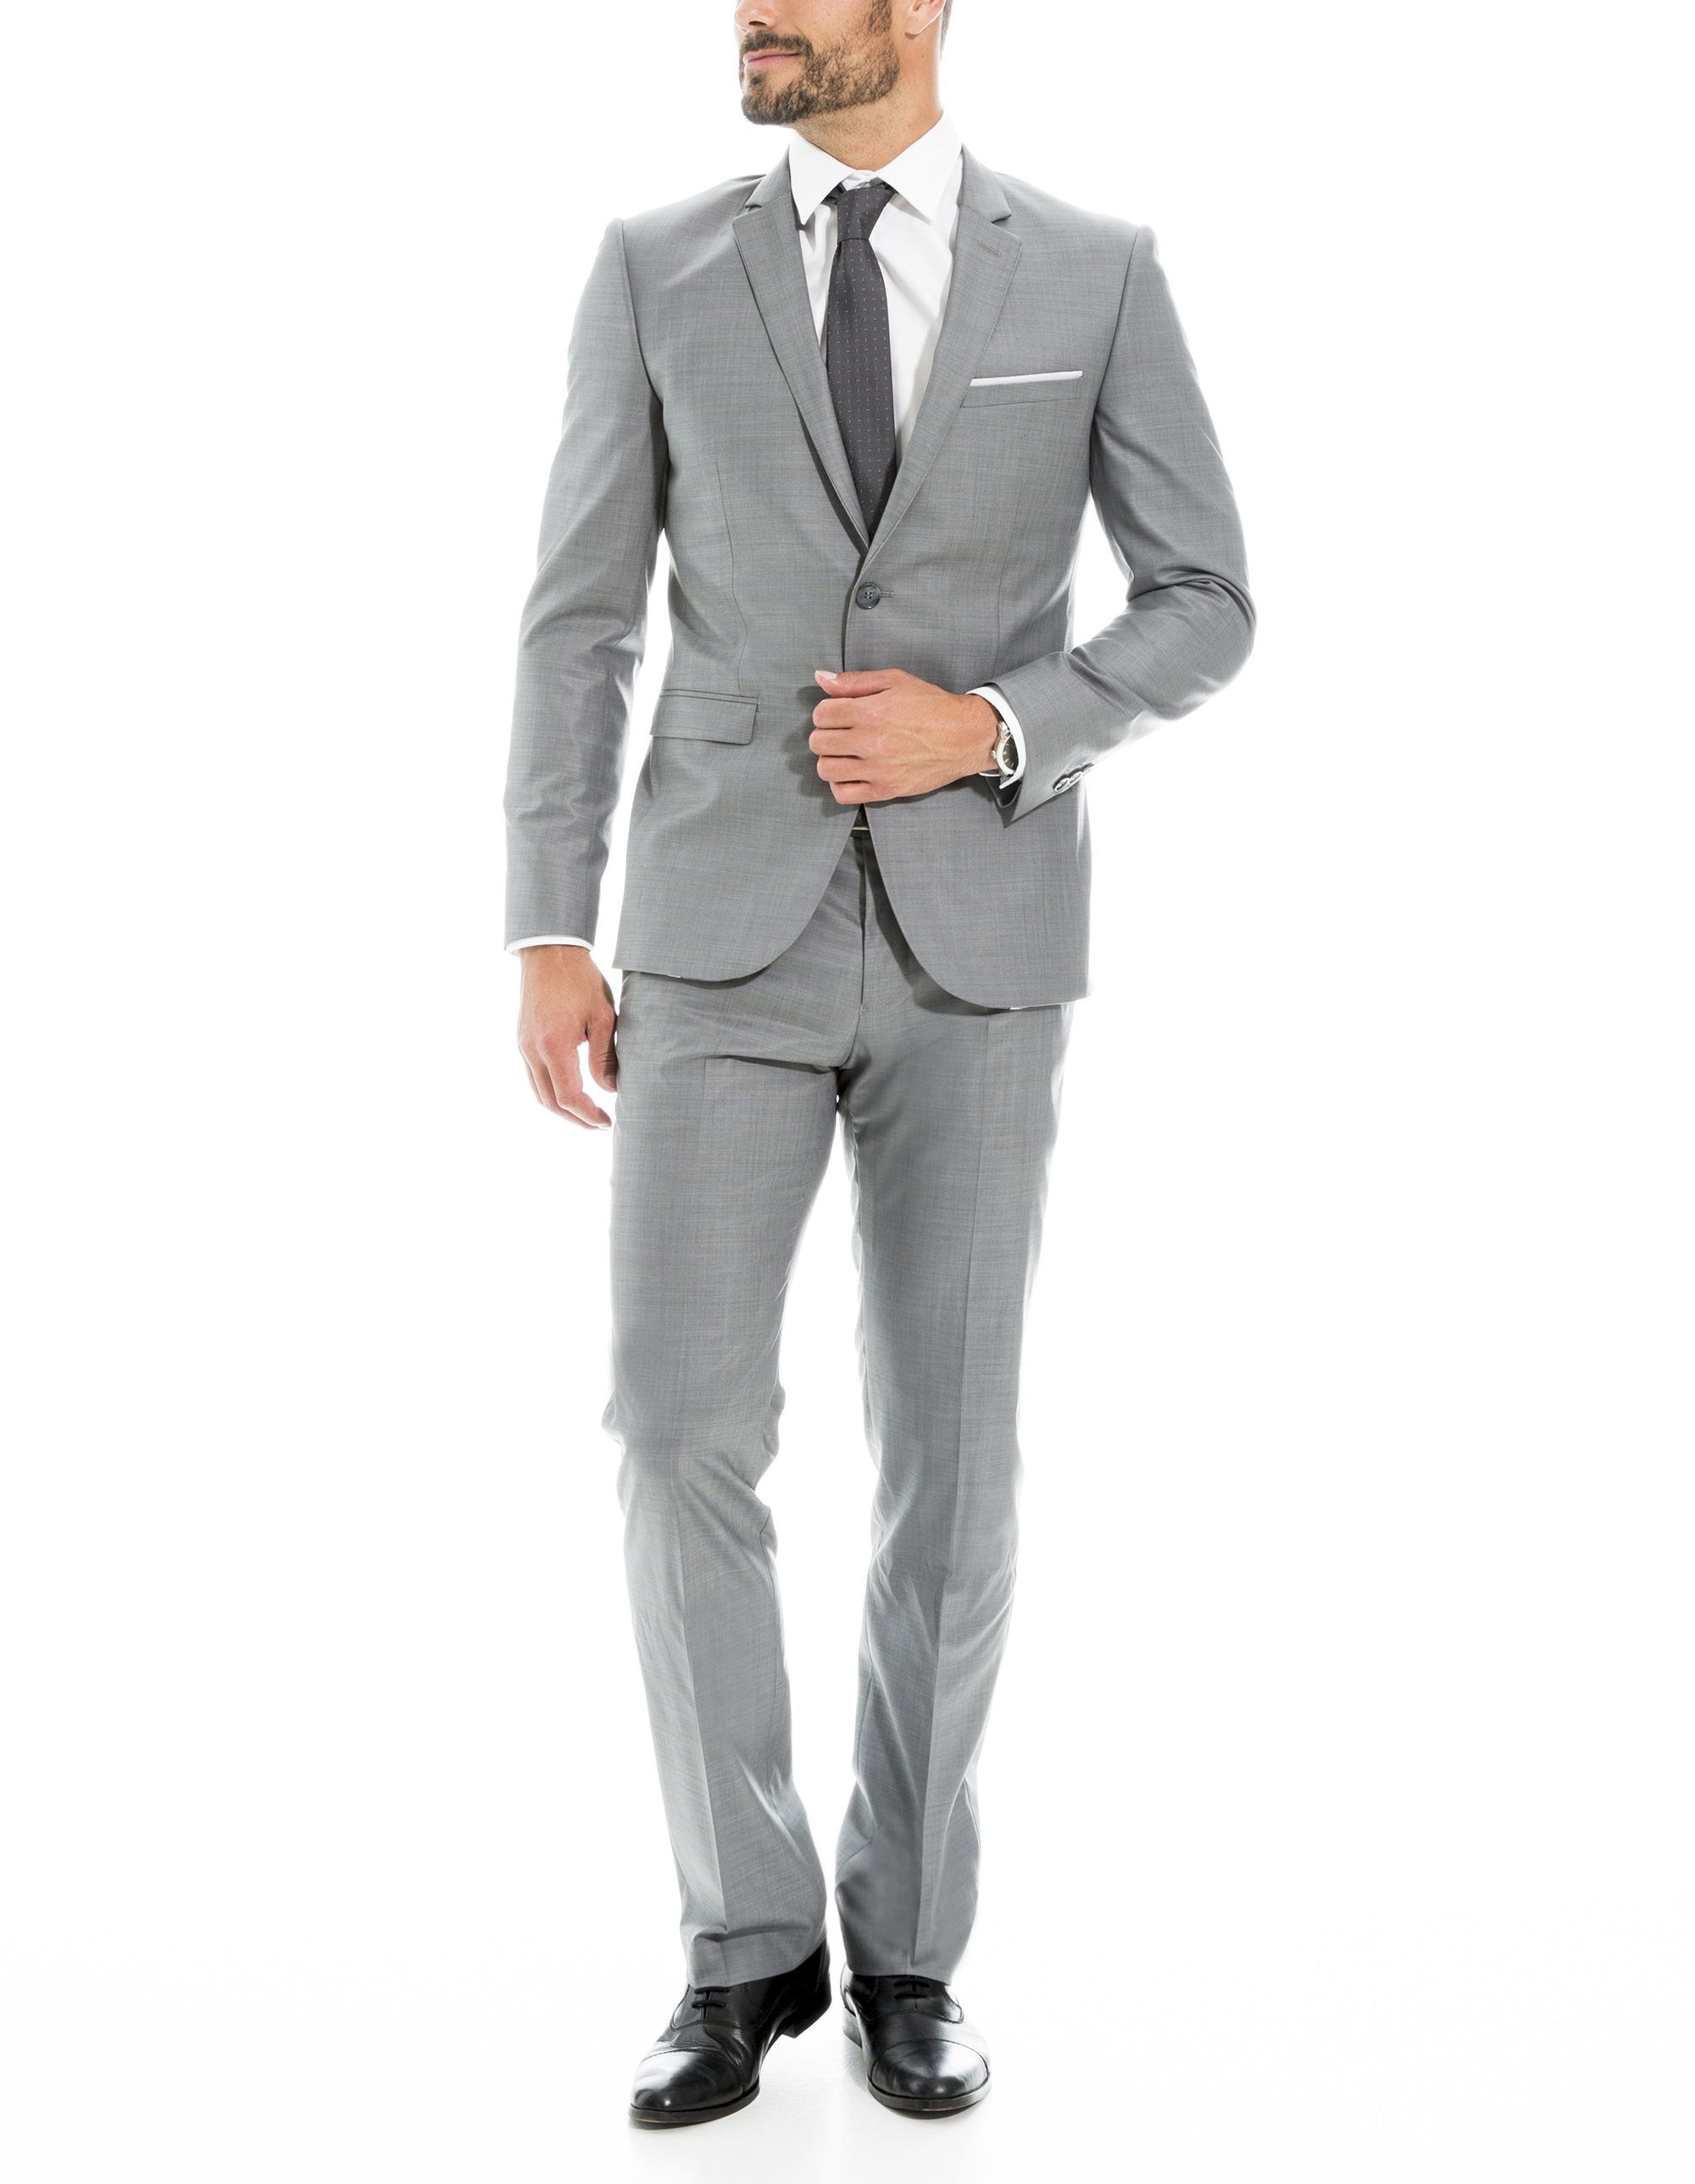 69b81adee2d180 Costume gris clair, coupe regular - Costume complet Homme - Brice-FR ...